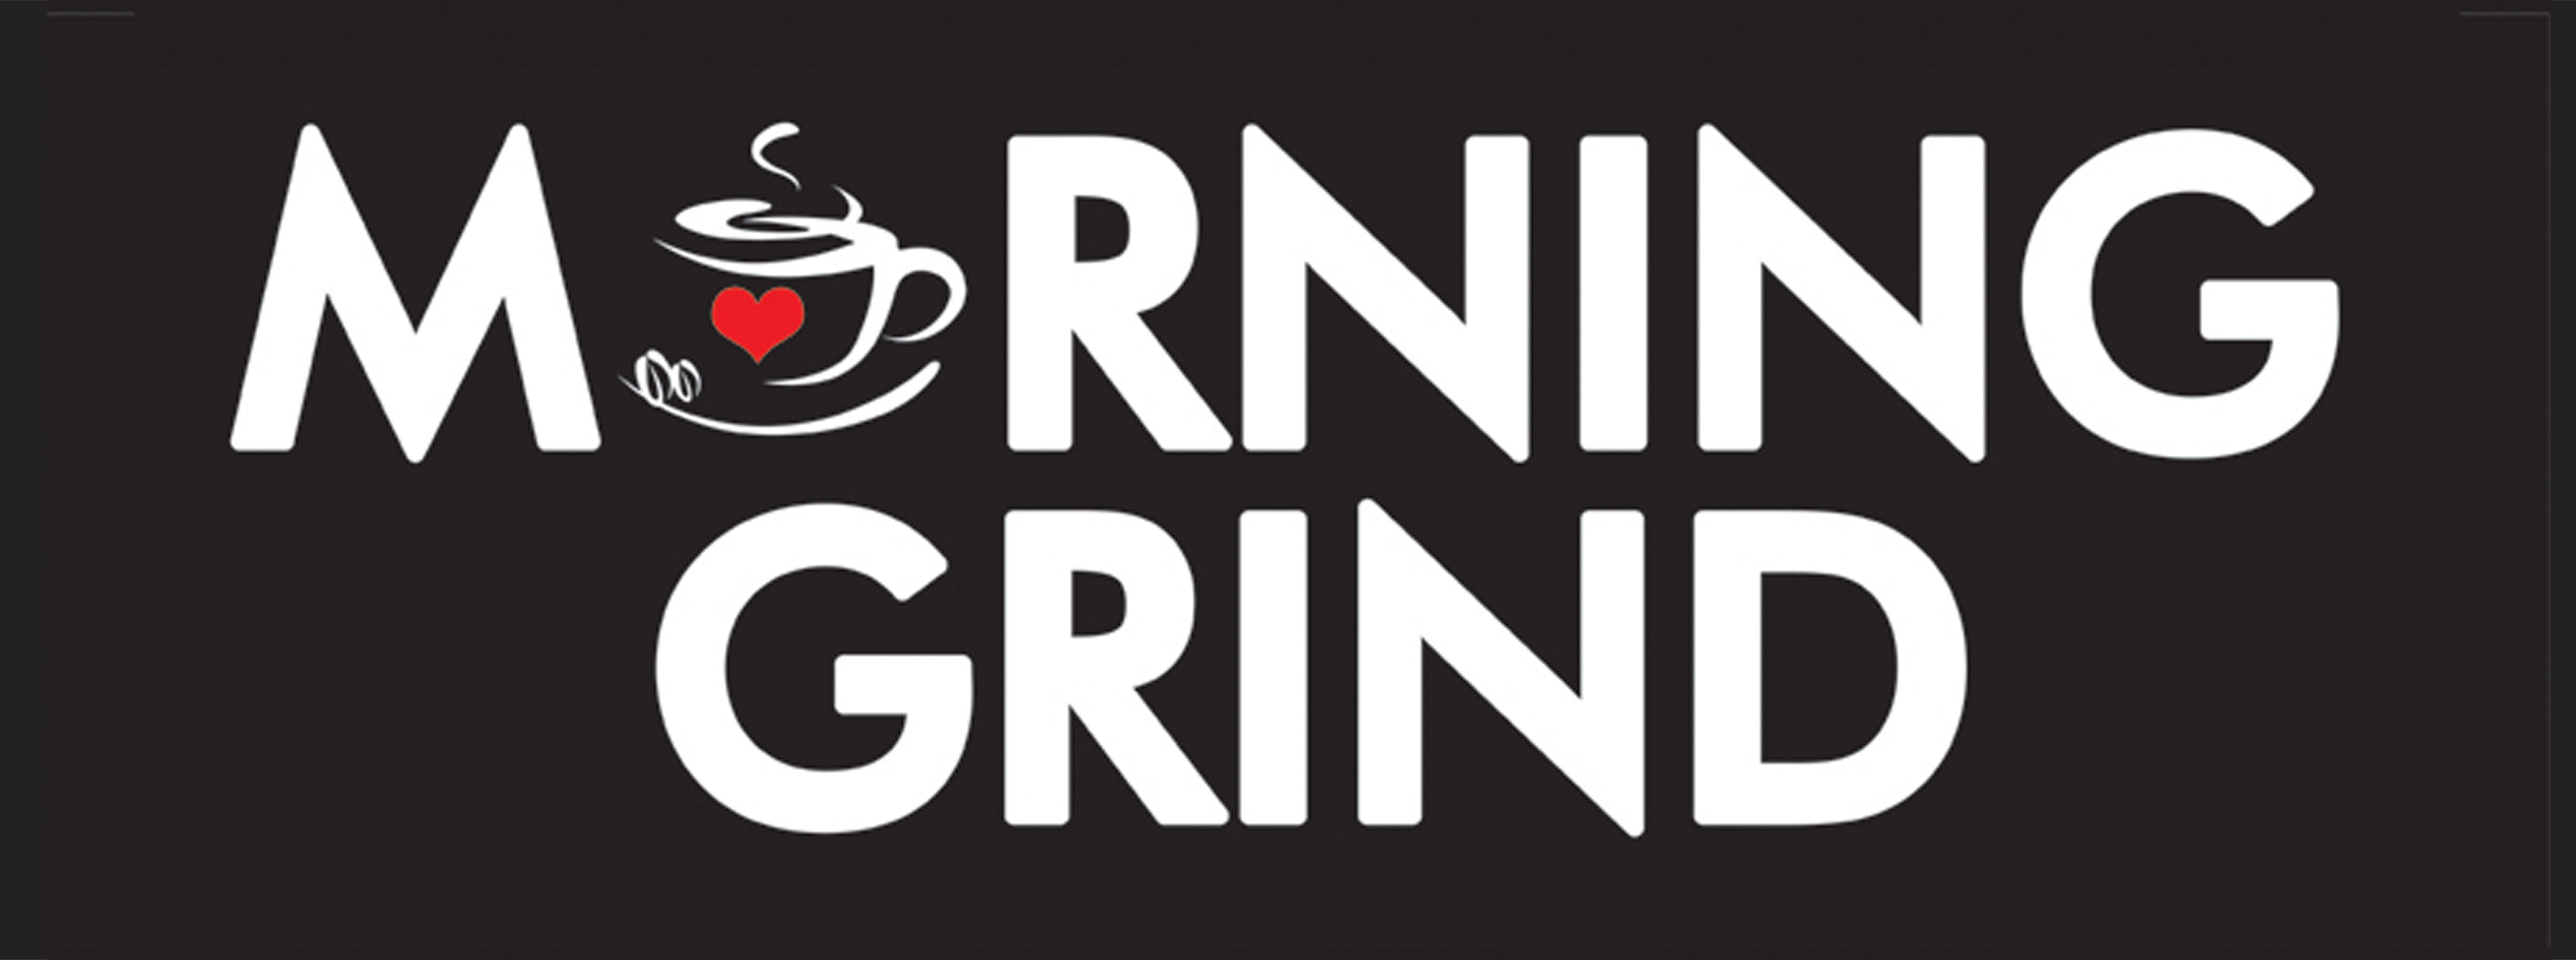 Morning Grind Cafe